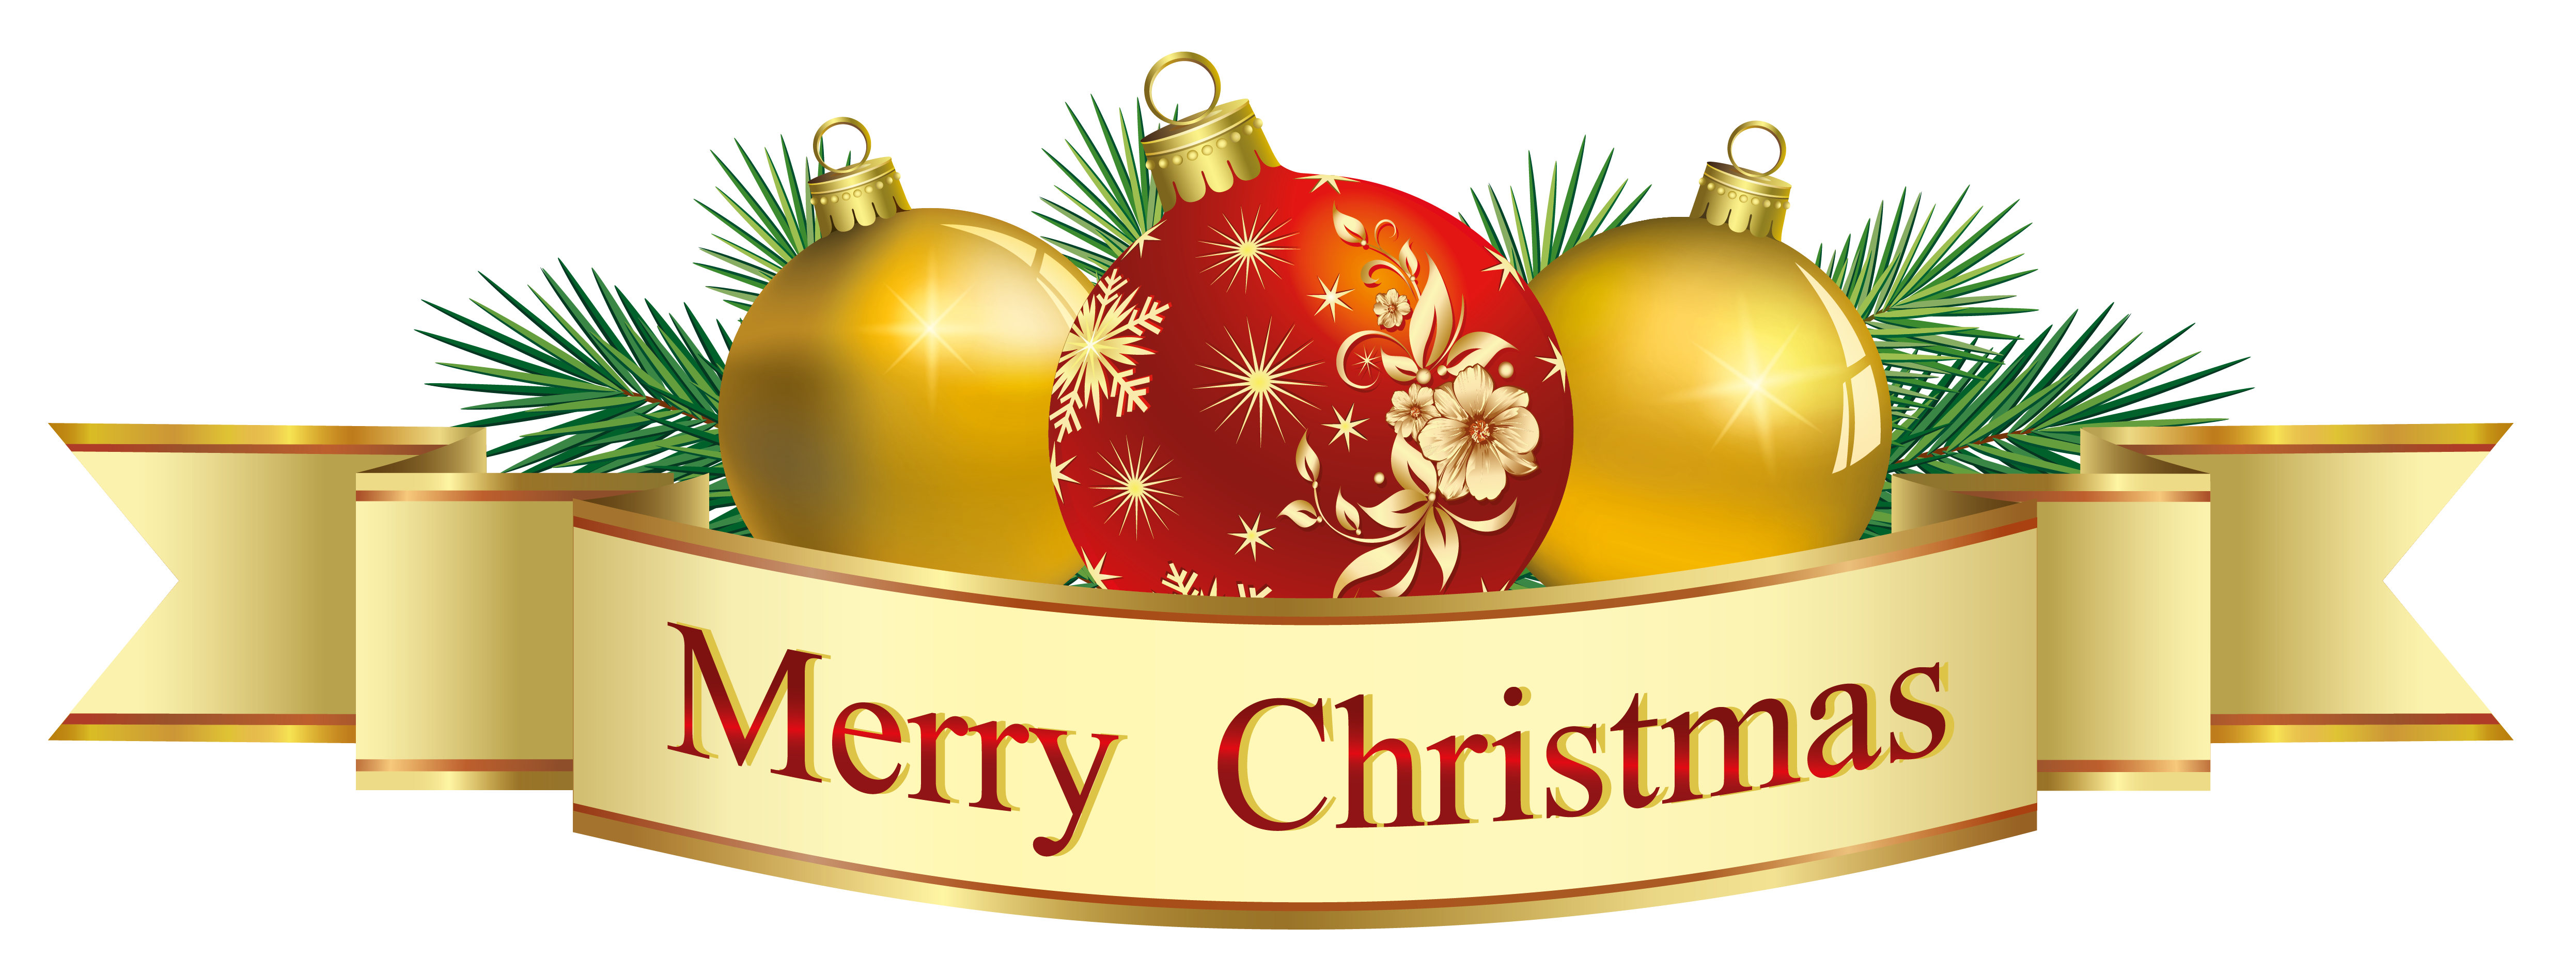 Free merry christmas clipart picture Transparent Merry Christmas Deco Clipart | Gallery Yopriceville ... picture